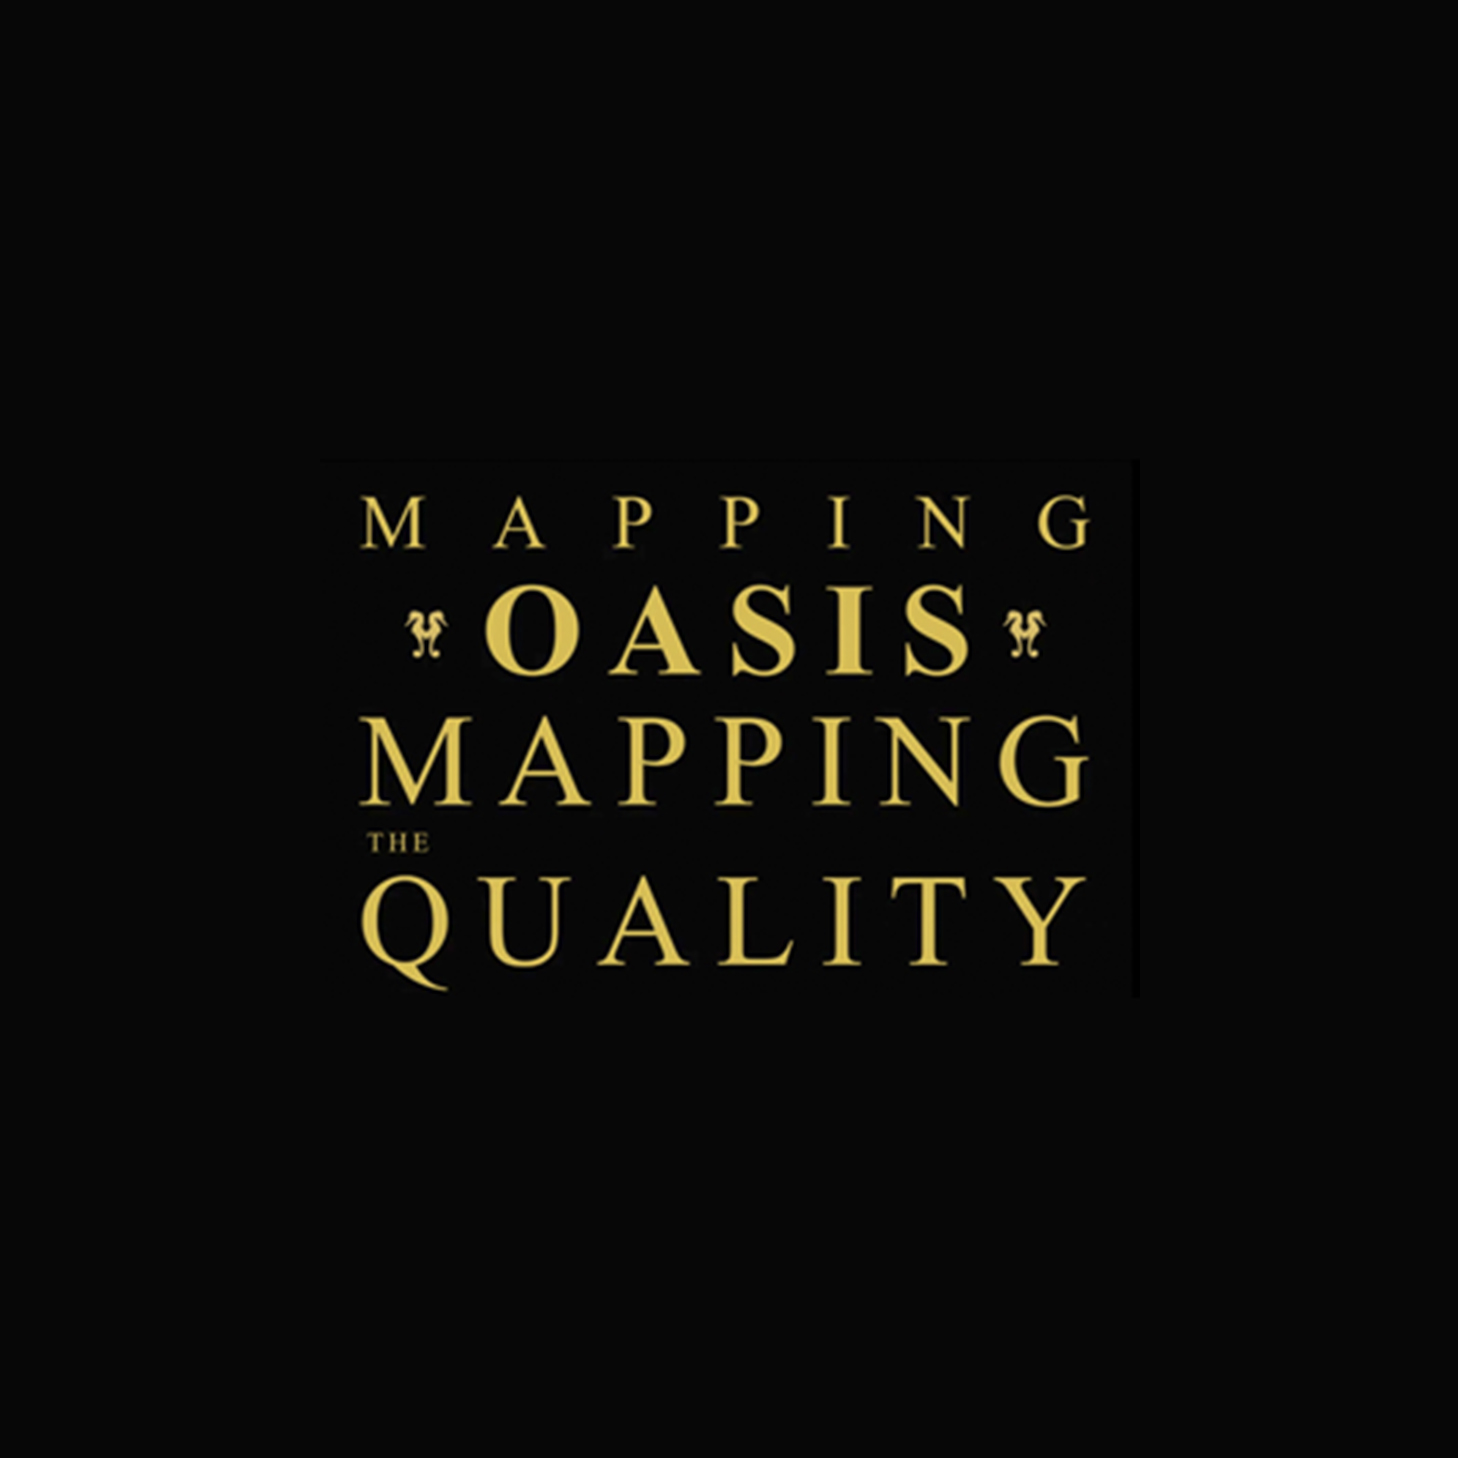 OASIS MAPPING VIDEO – FUORISALONE, MDW 2014